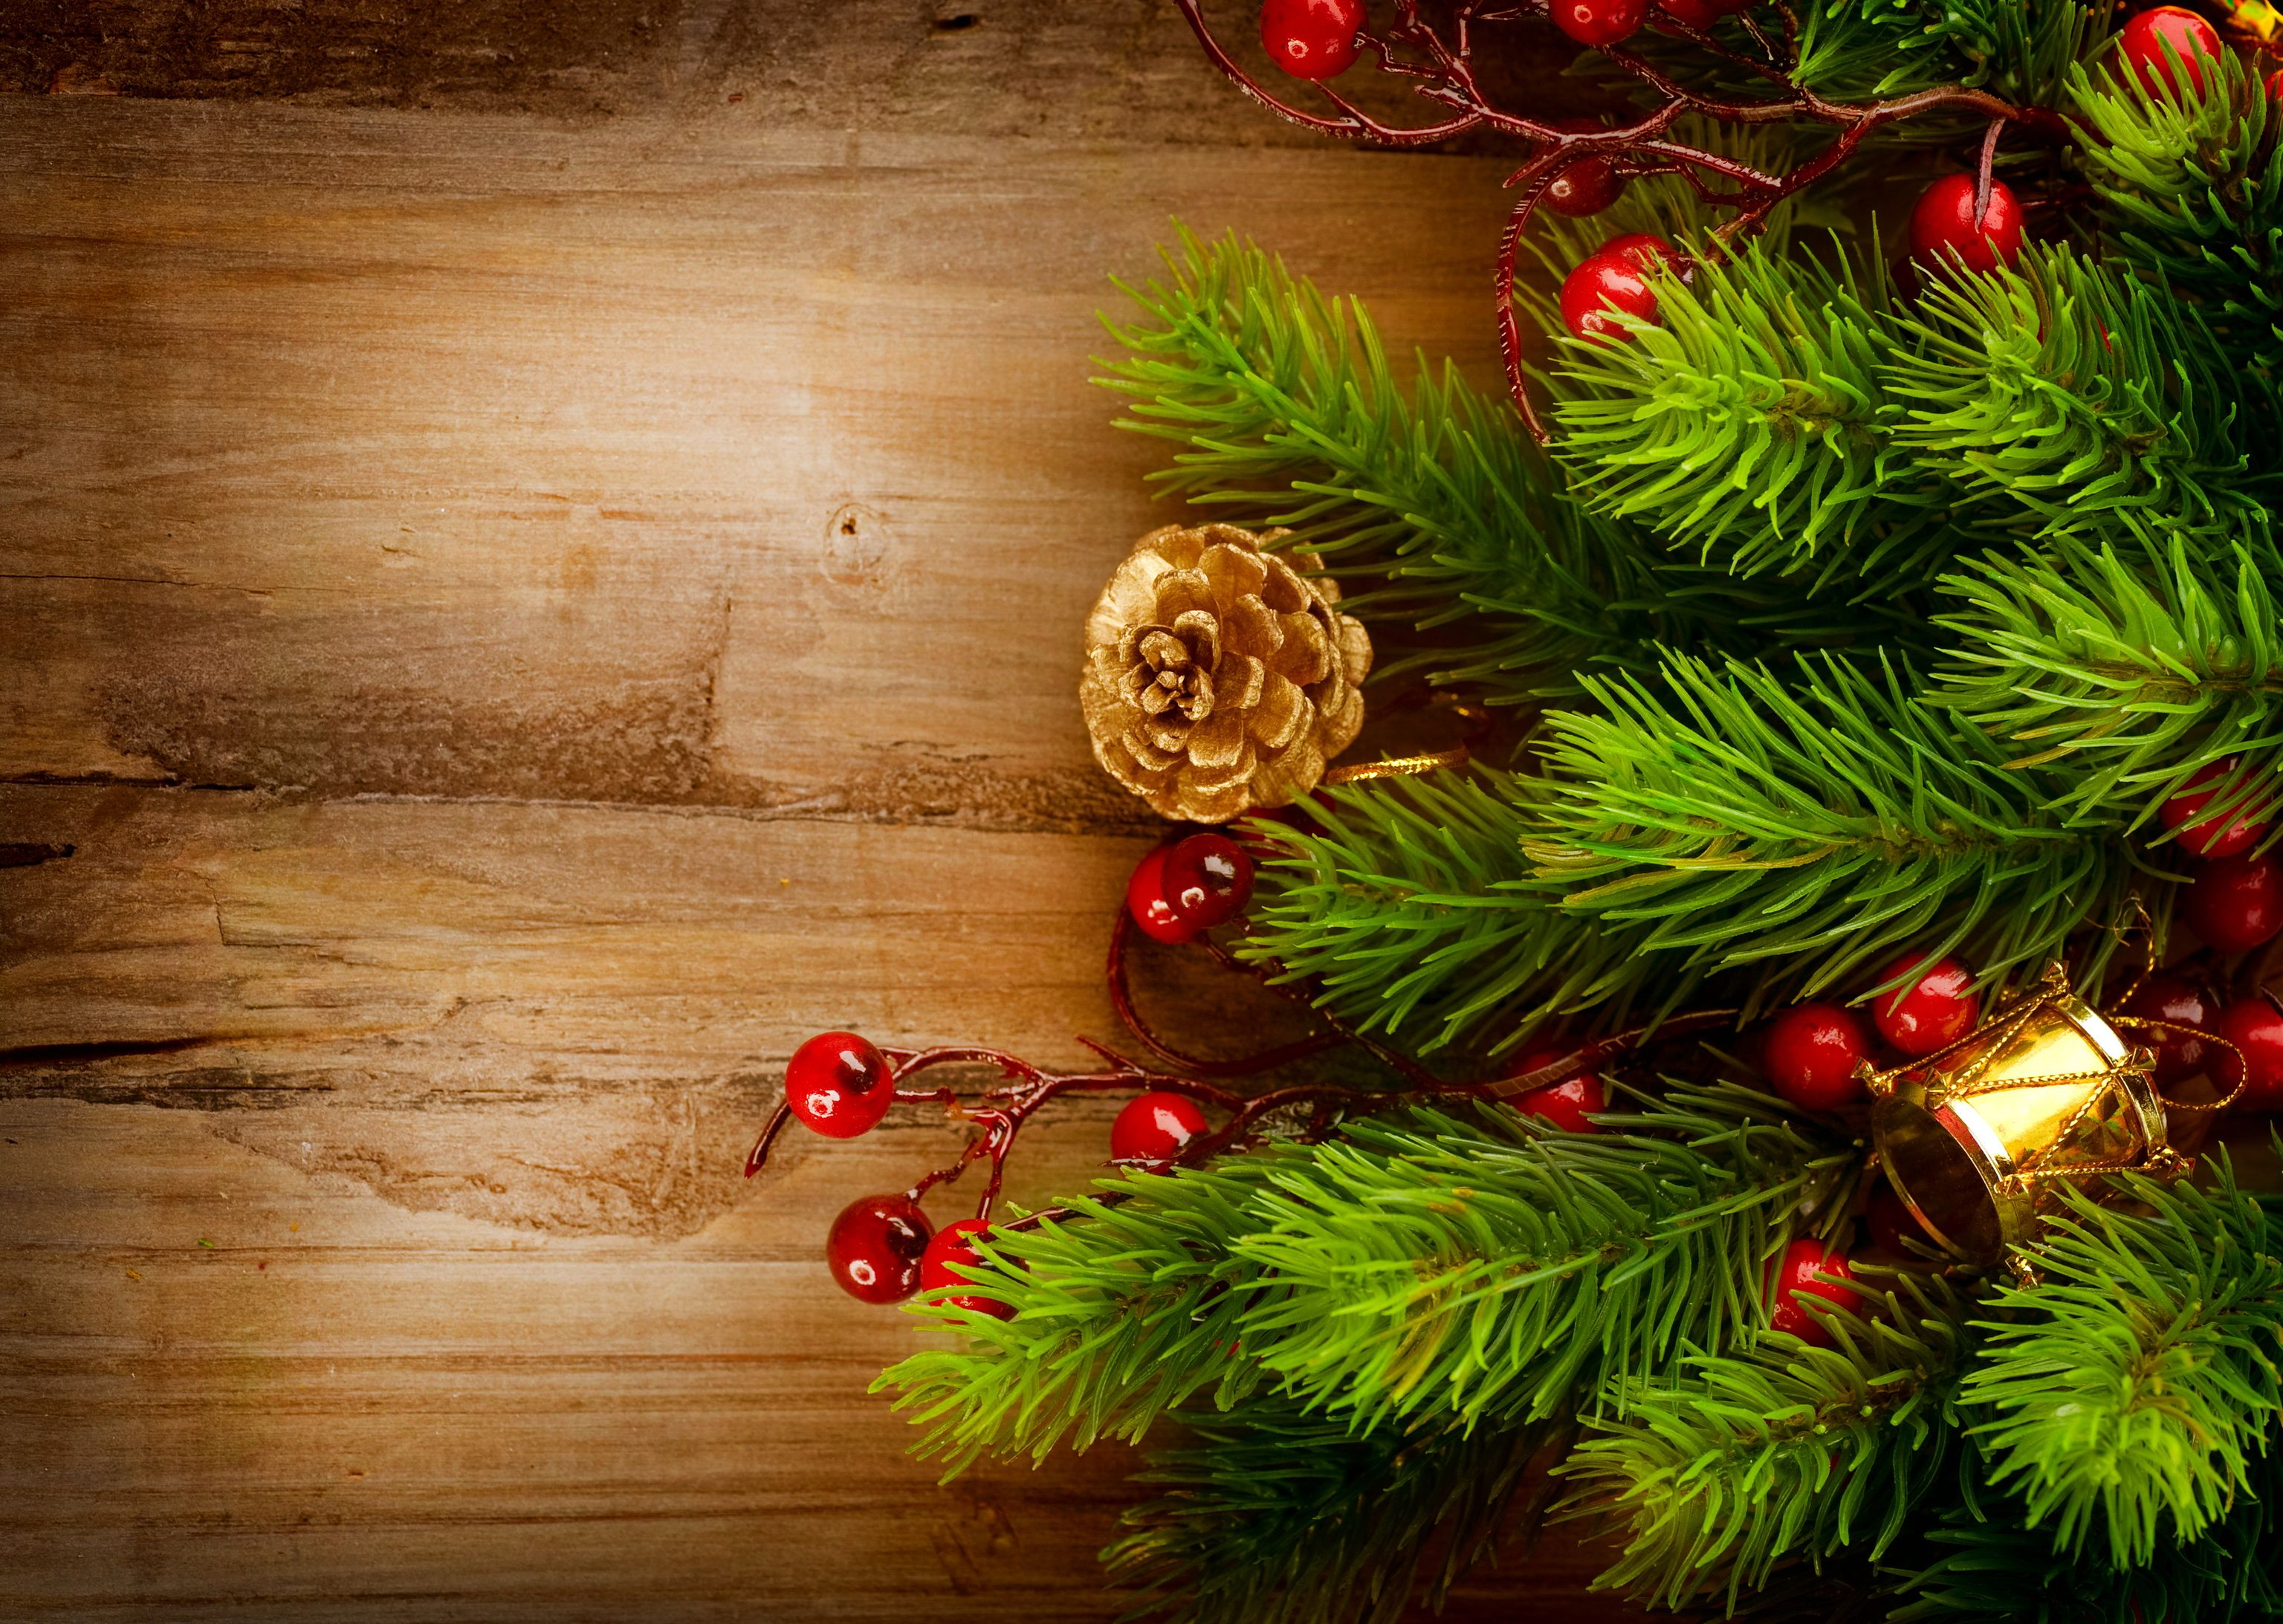 Holidays Christmas New Year Branches Pine Cone Wallpaper 3072x2185 178471 Christmas Scrapbook Christmas Desktop Wallpaper Christmas Desktop